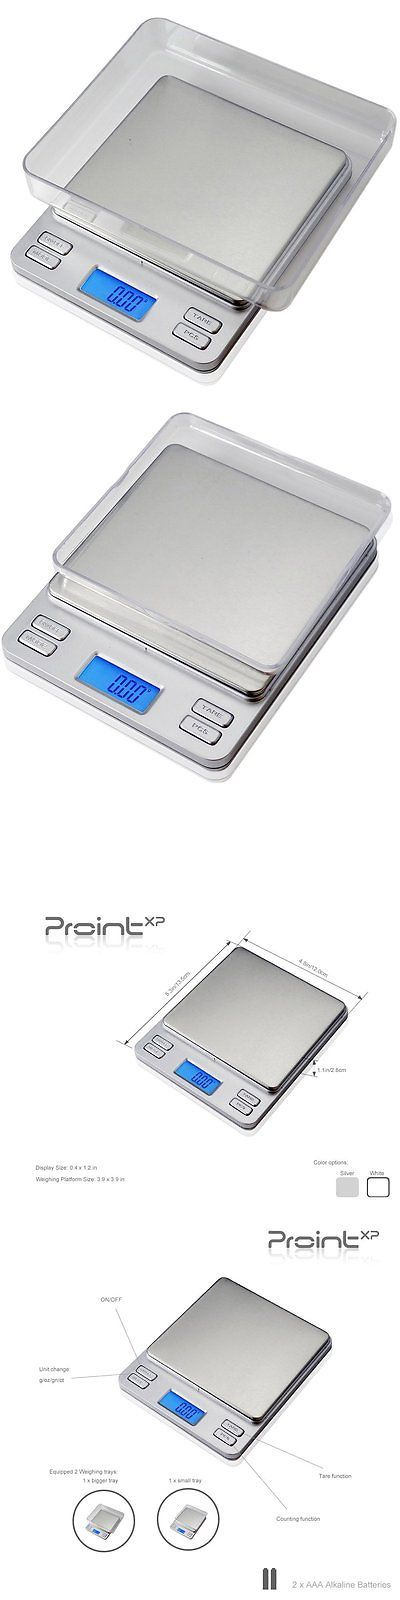 Pocket Digital Scales: Prointxpâ® High Precision Jewelry Scale Ptpt2-200, 200 By 0.01G With Blue Lcd -> BUY IT NOW ONLY: $36.46 on eBay!